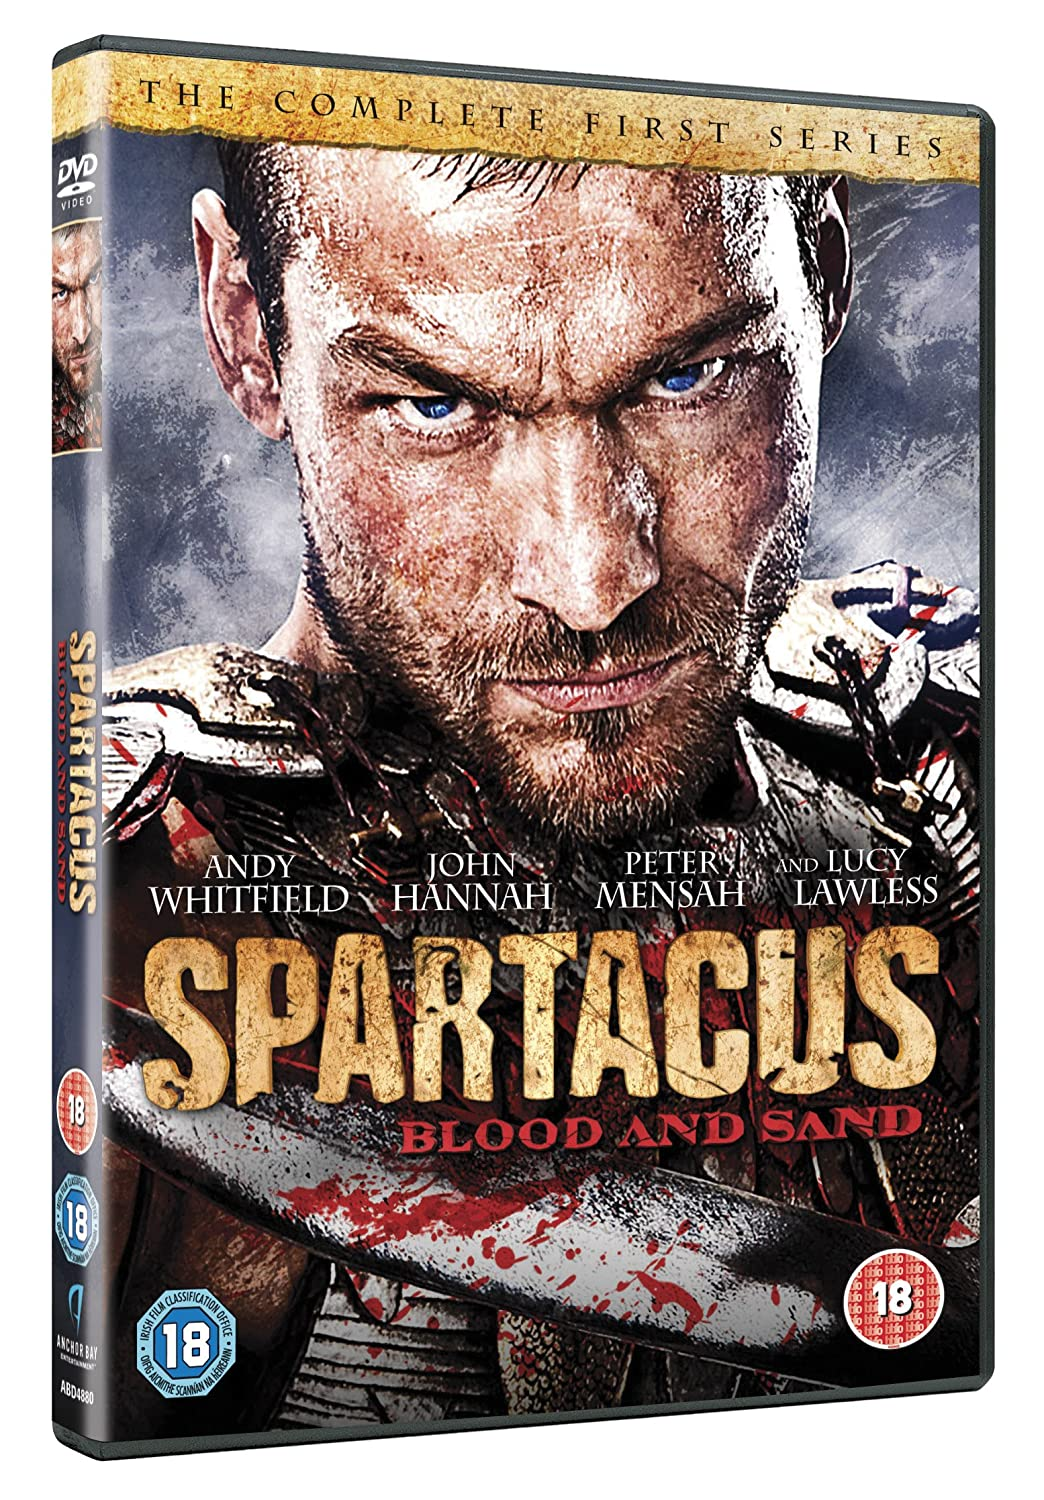 spartacus blood and sand full movie mp4 download